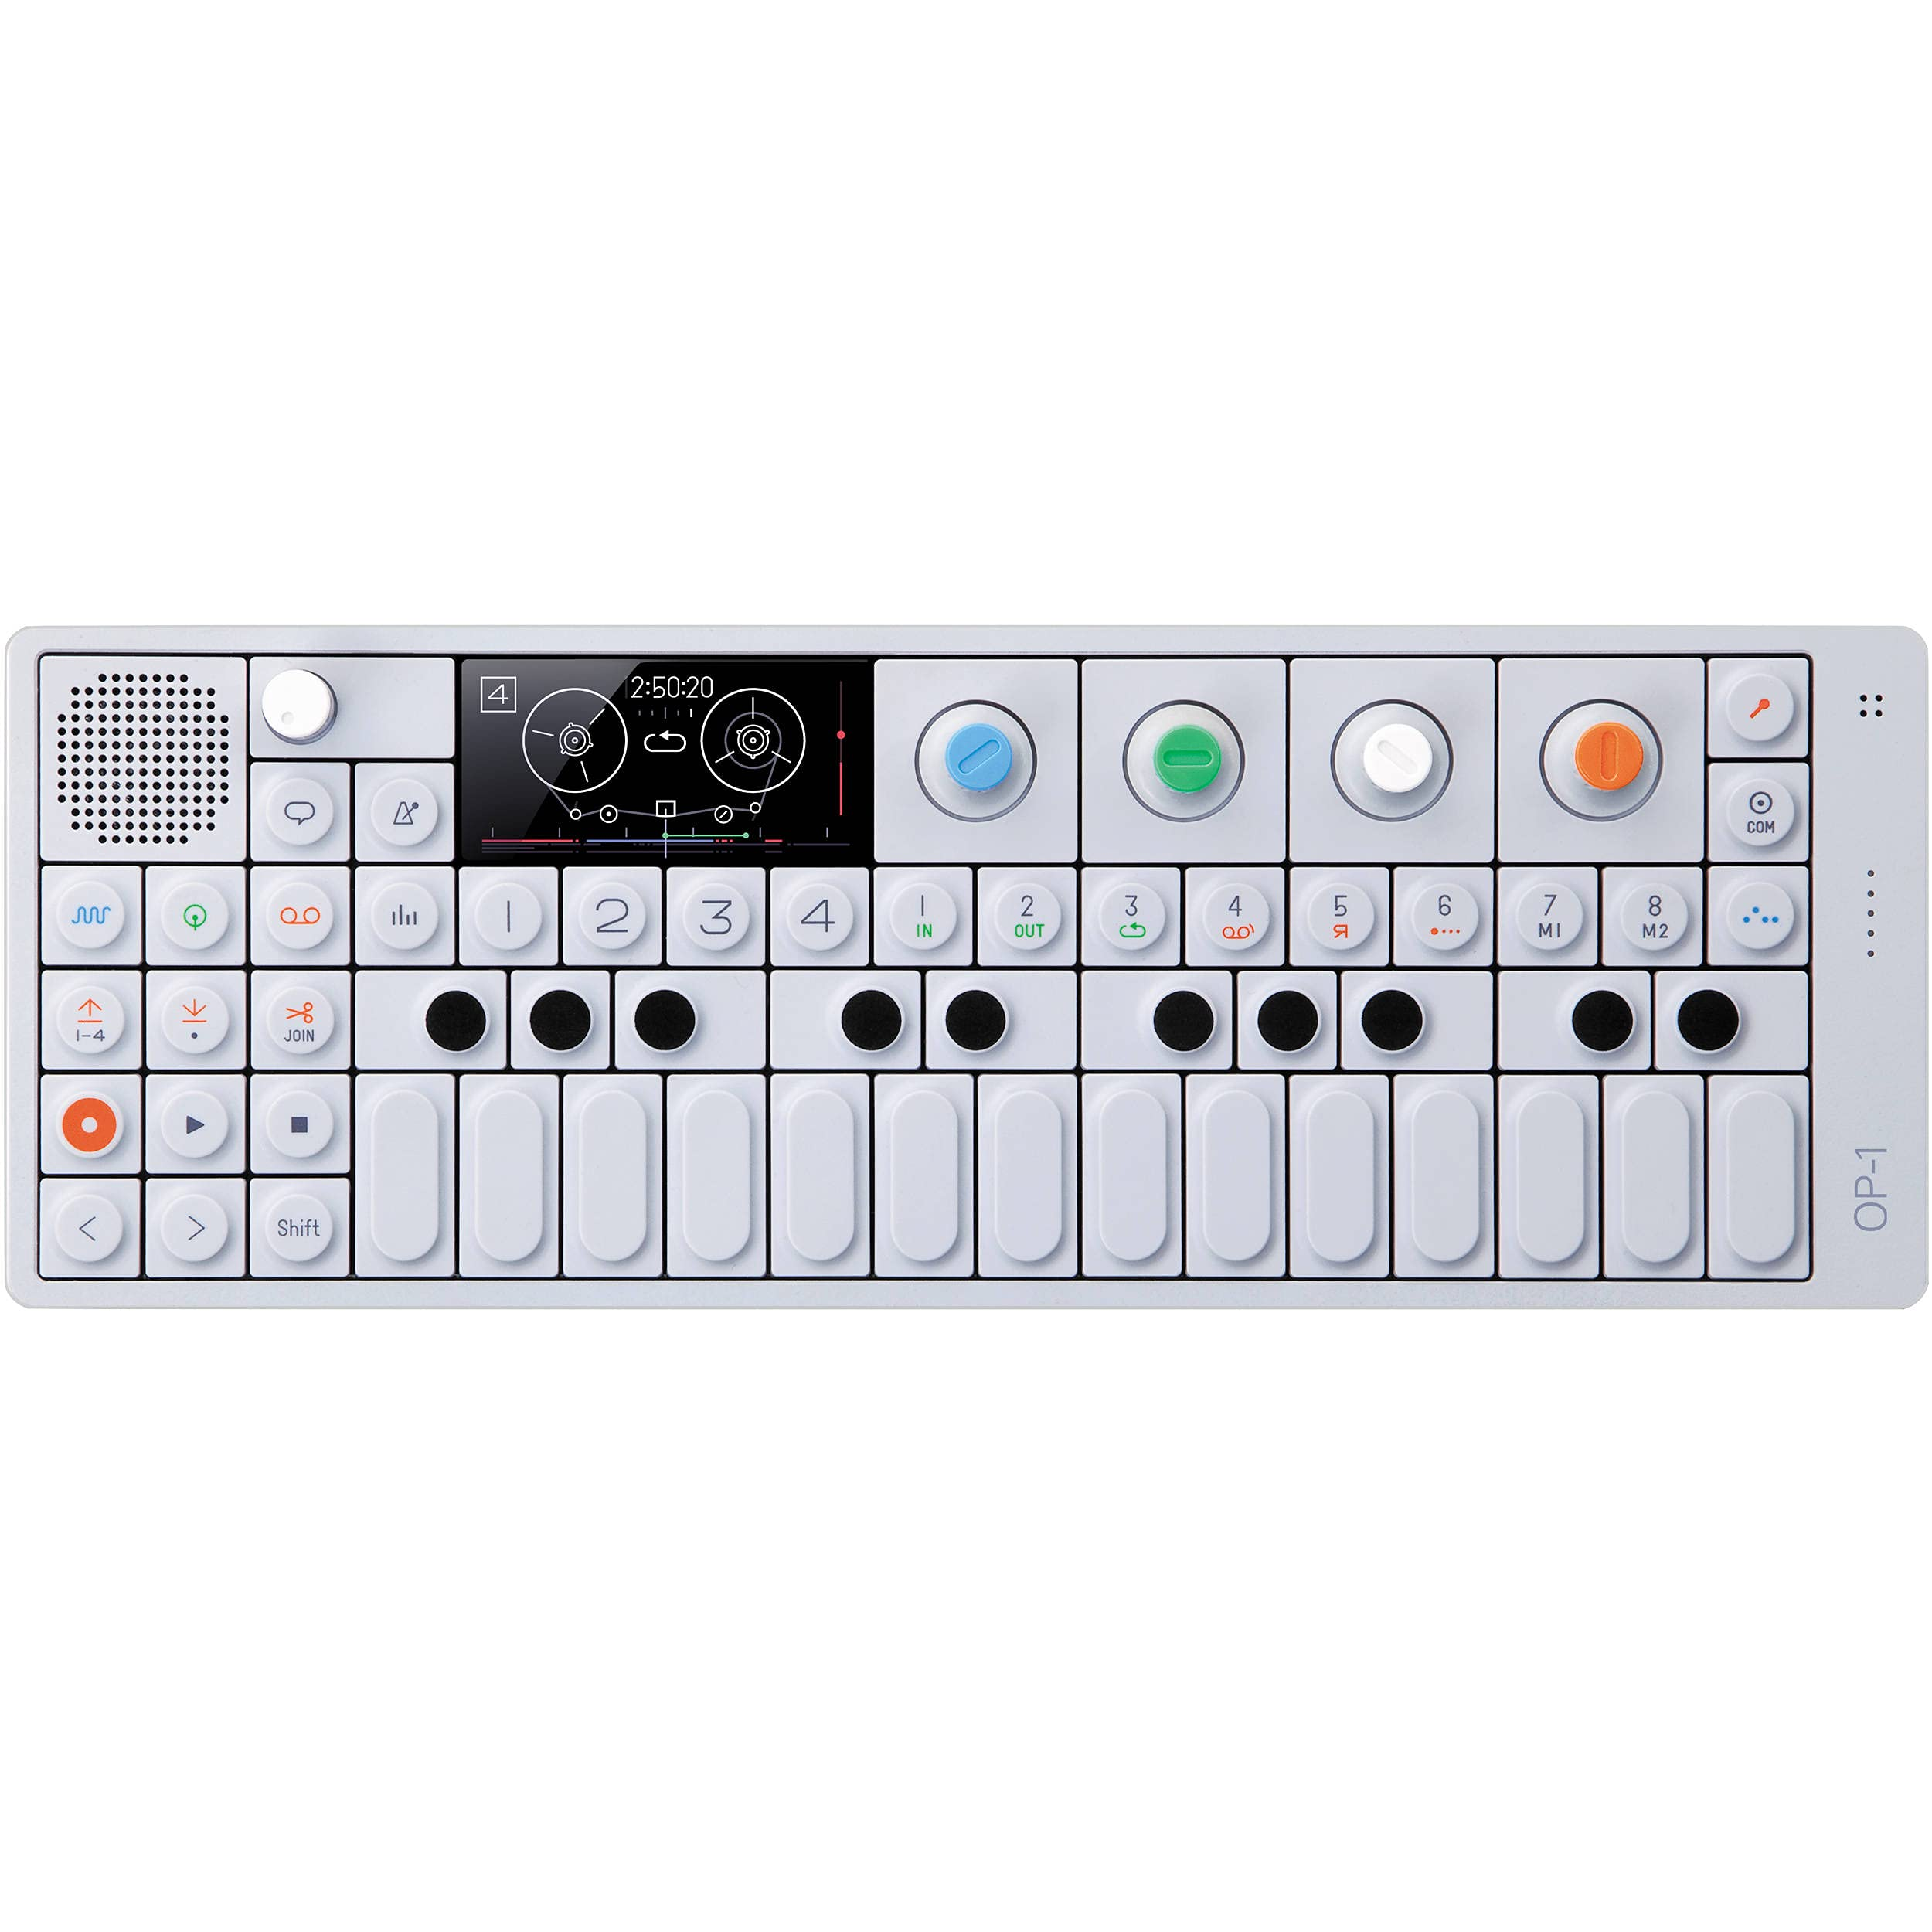 Teenage Engineering OP-1 Portable Synthesizer, Sampler, and Controller with Built-In FM Radio and 4-Track Tape Recorder - 10 Year Anniversary Edition